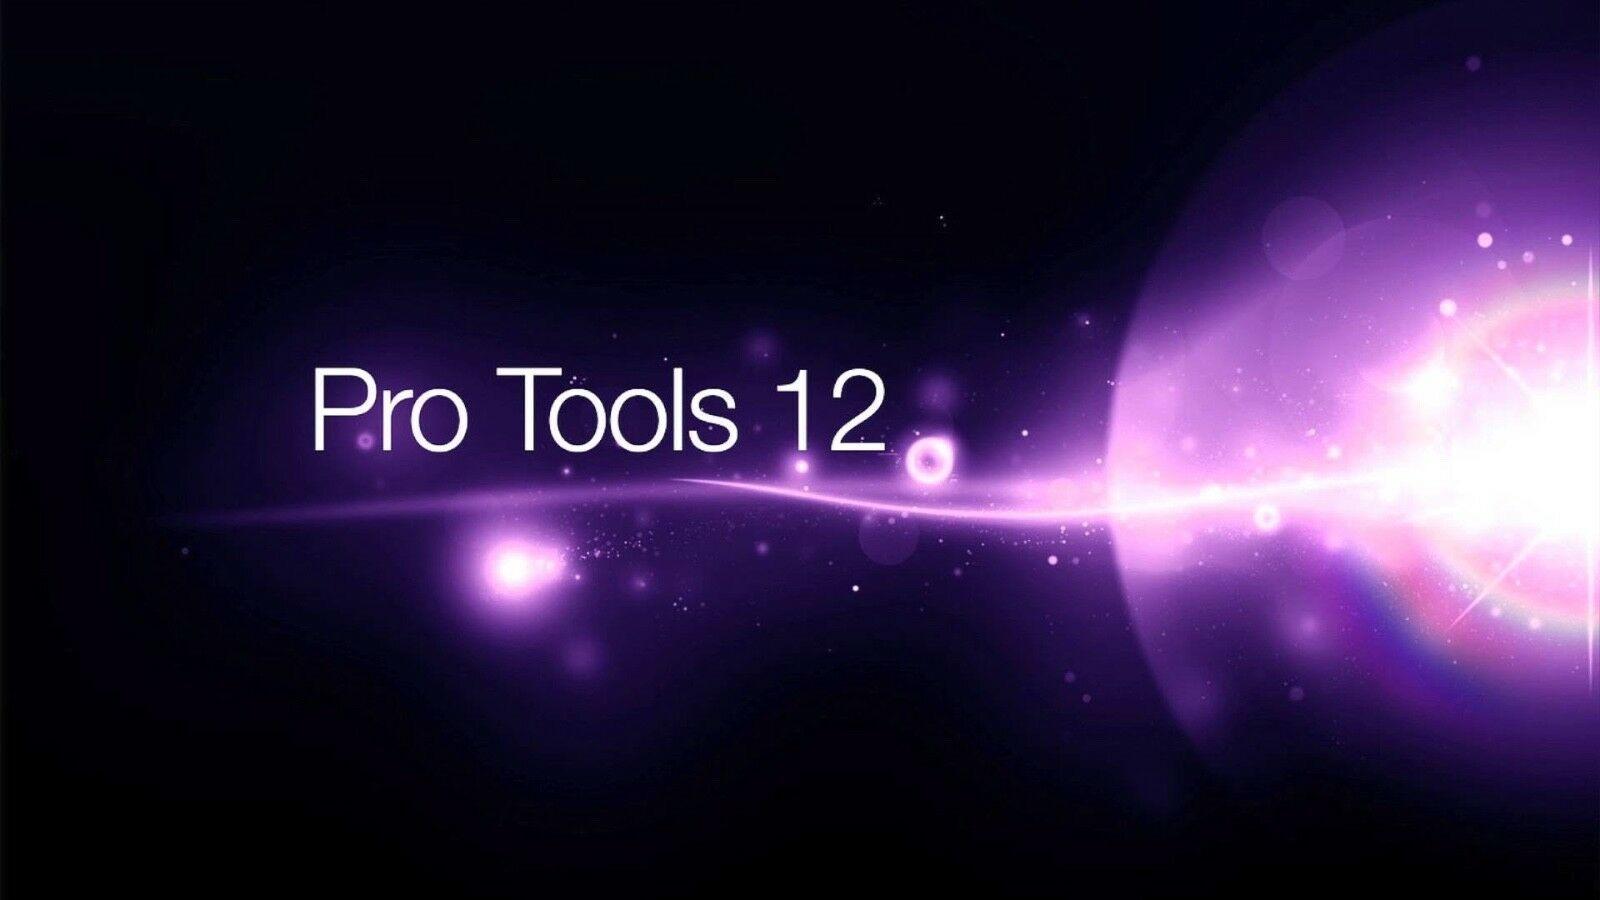 Avid Pro Tools 12 PERPETUAL USED 10 + 11 + 12.5.2 INCLUDES iLOK Version 3